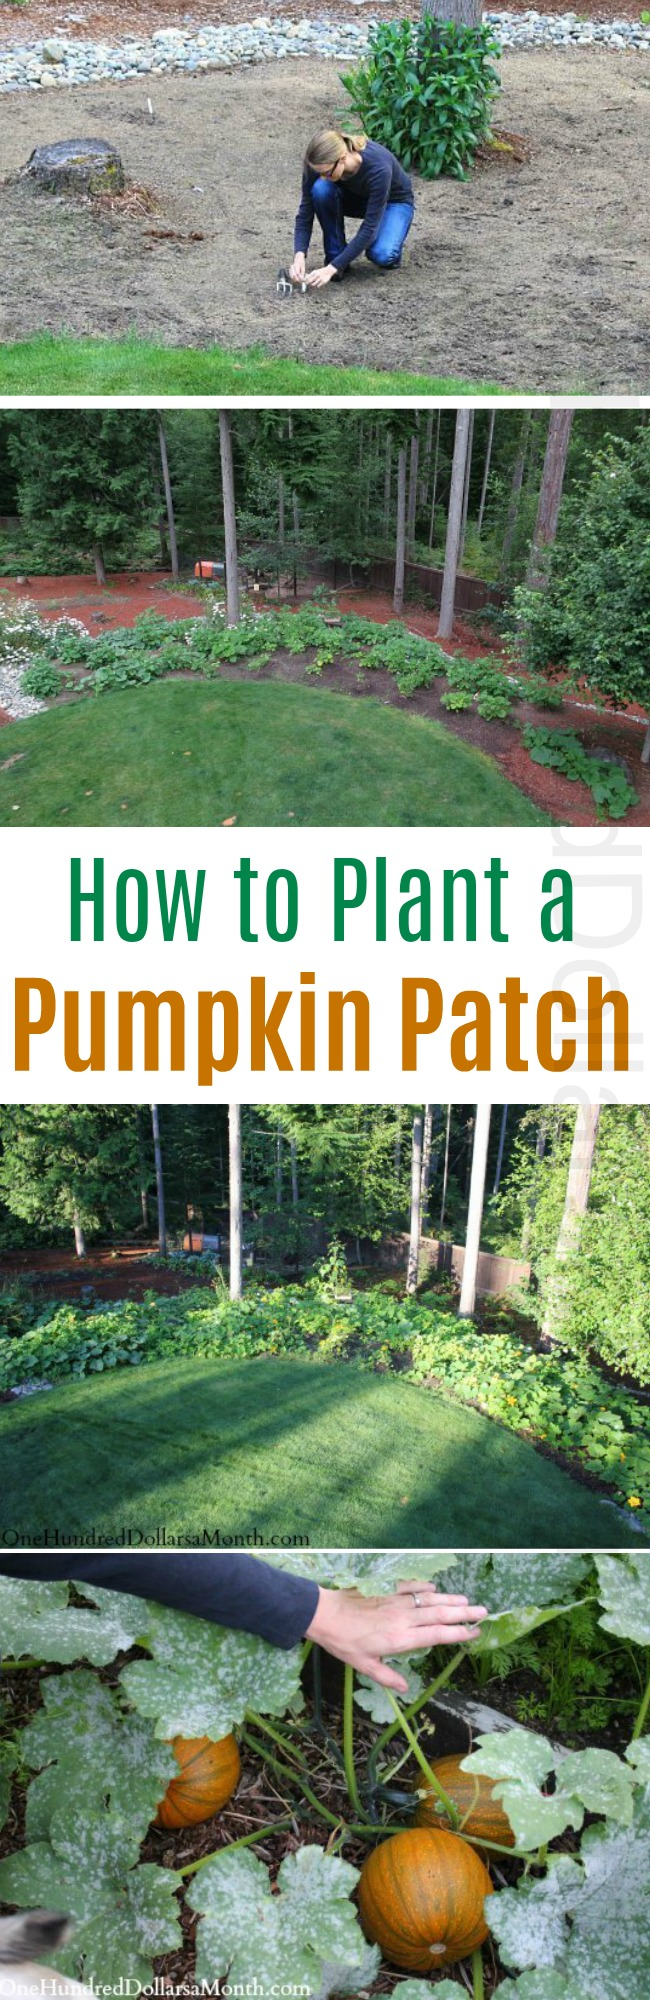 How to Plant a Pumpkin Patch